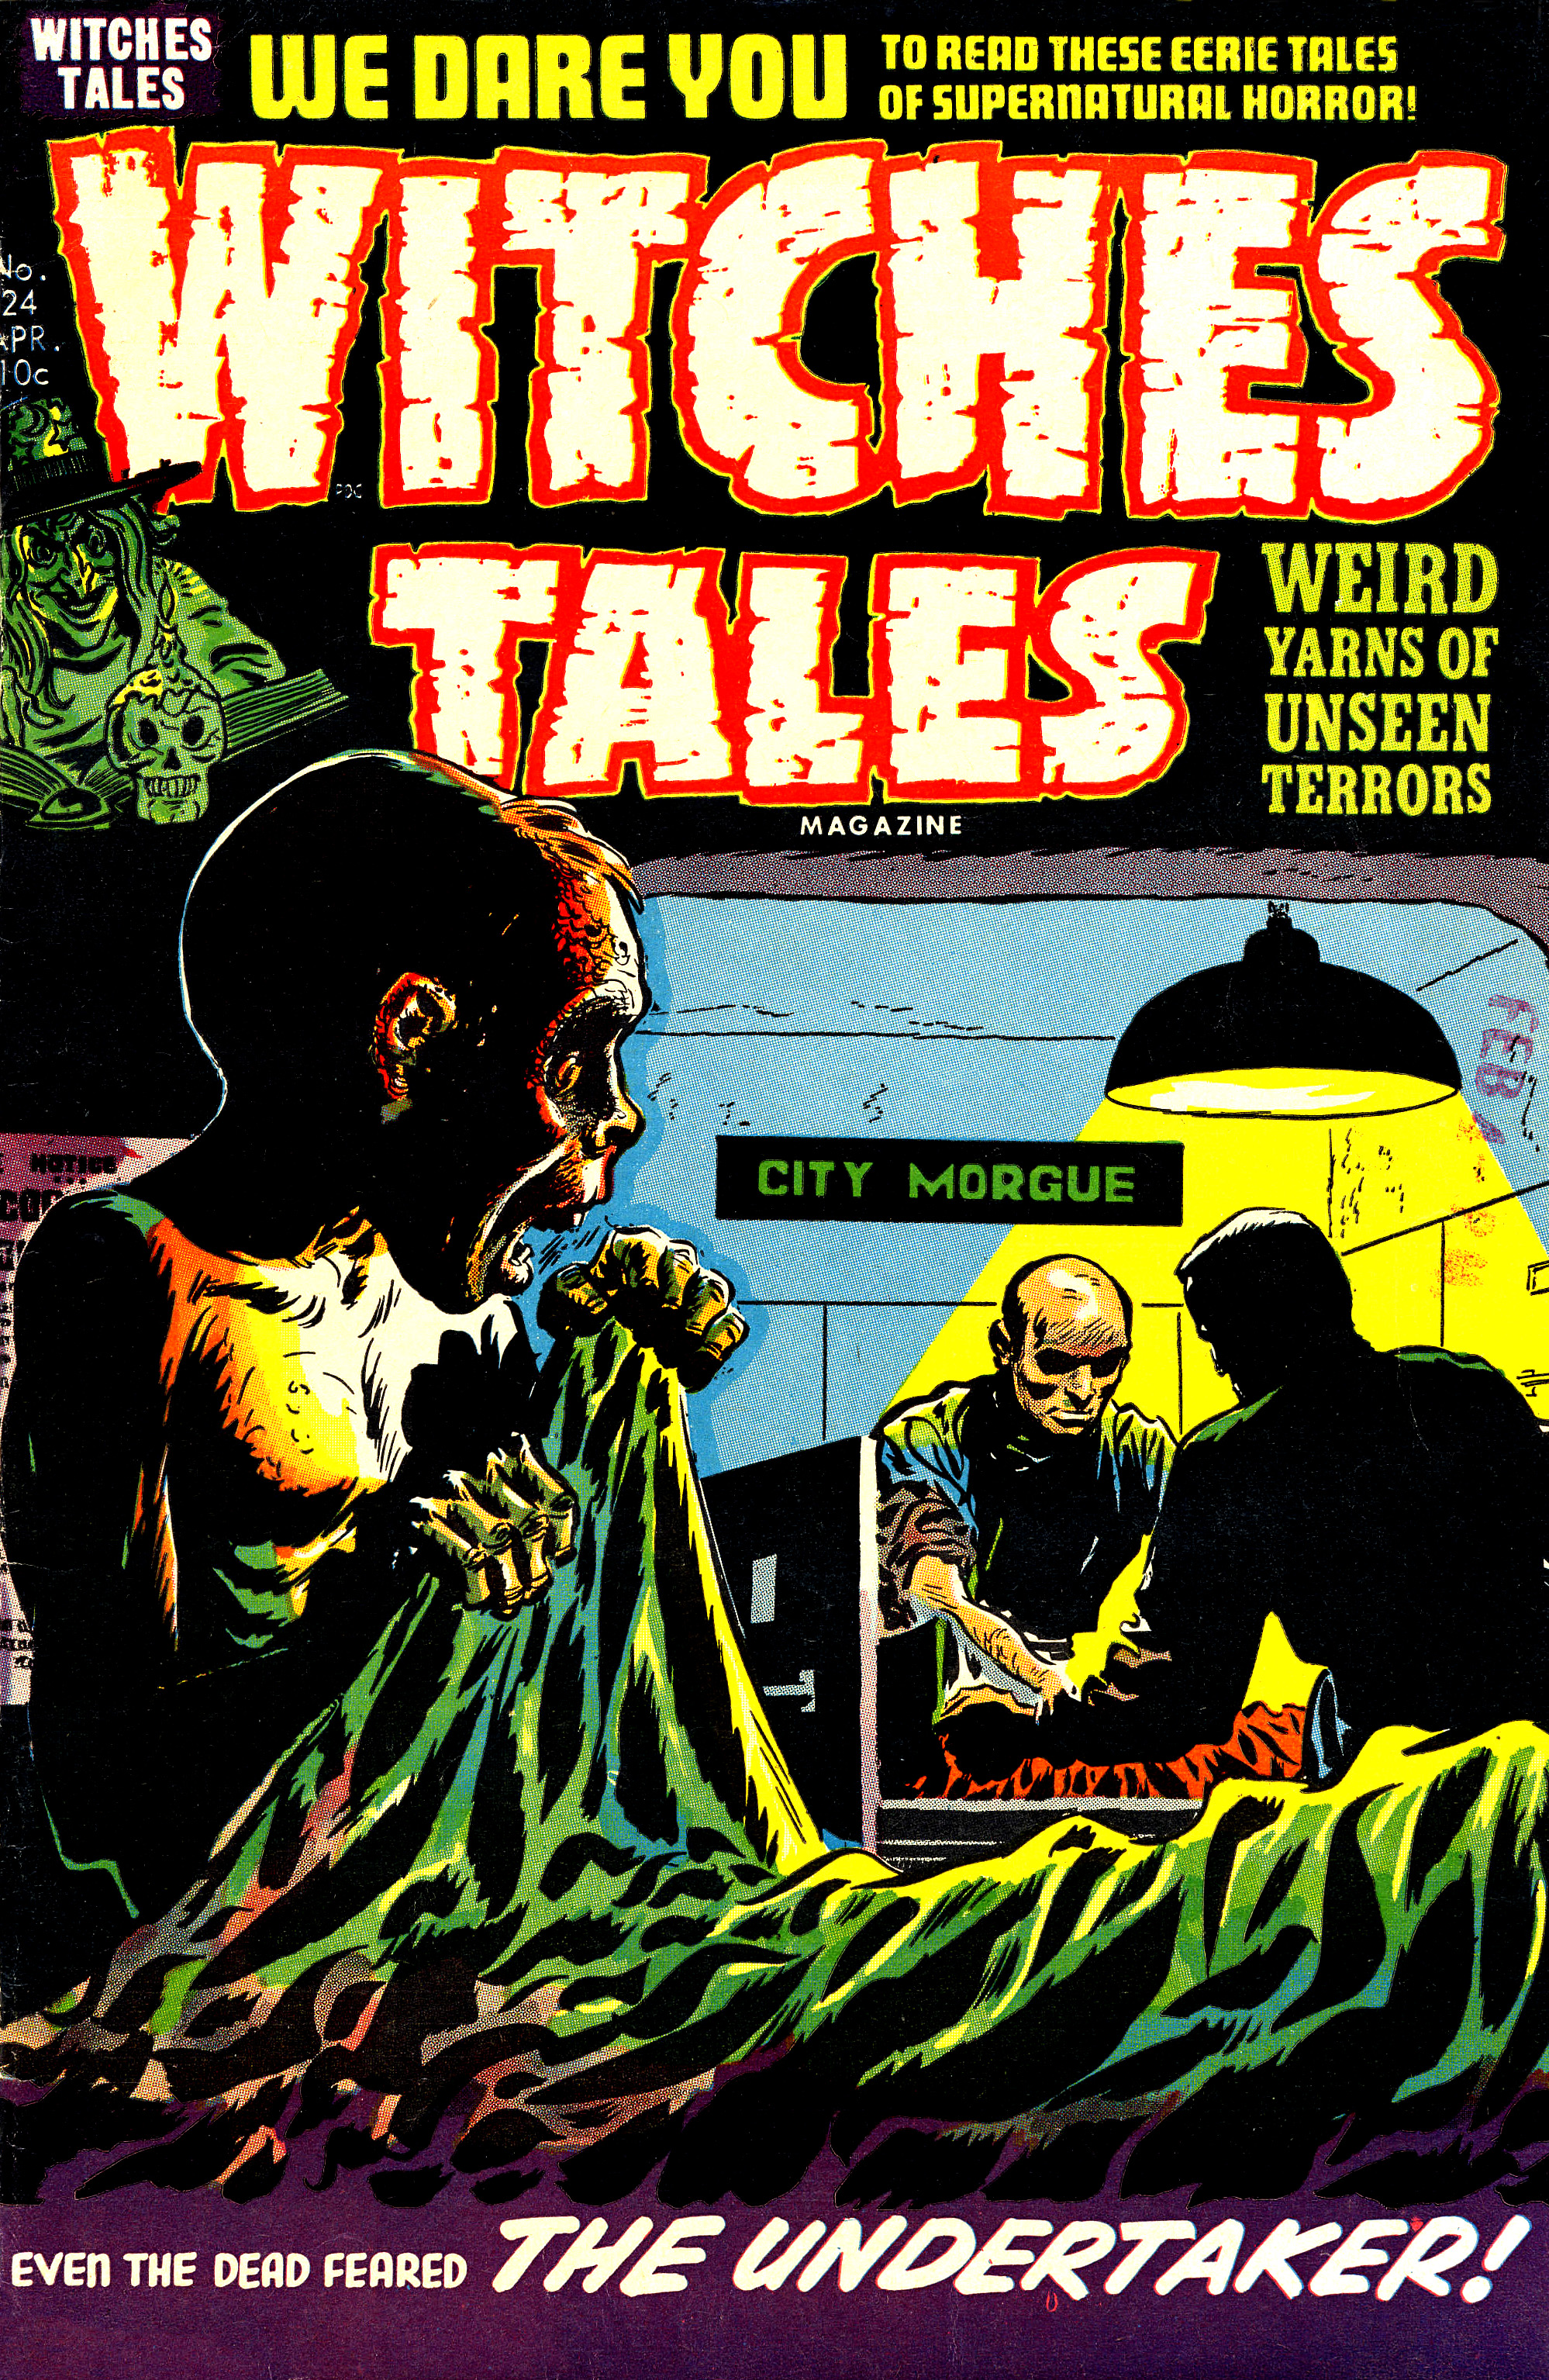 Witches Tales #24, Lee Elias Cove (Harvey, 1954)